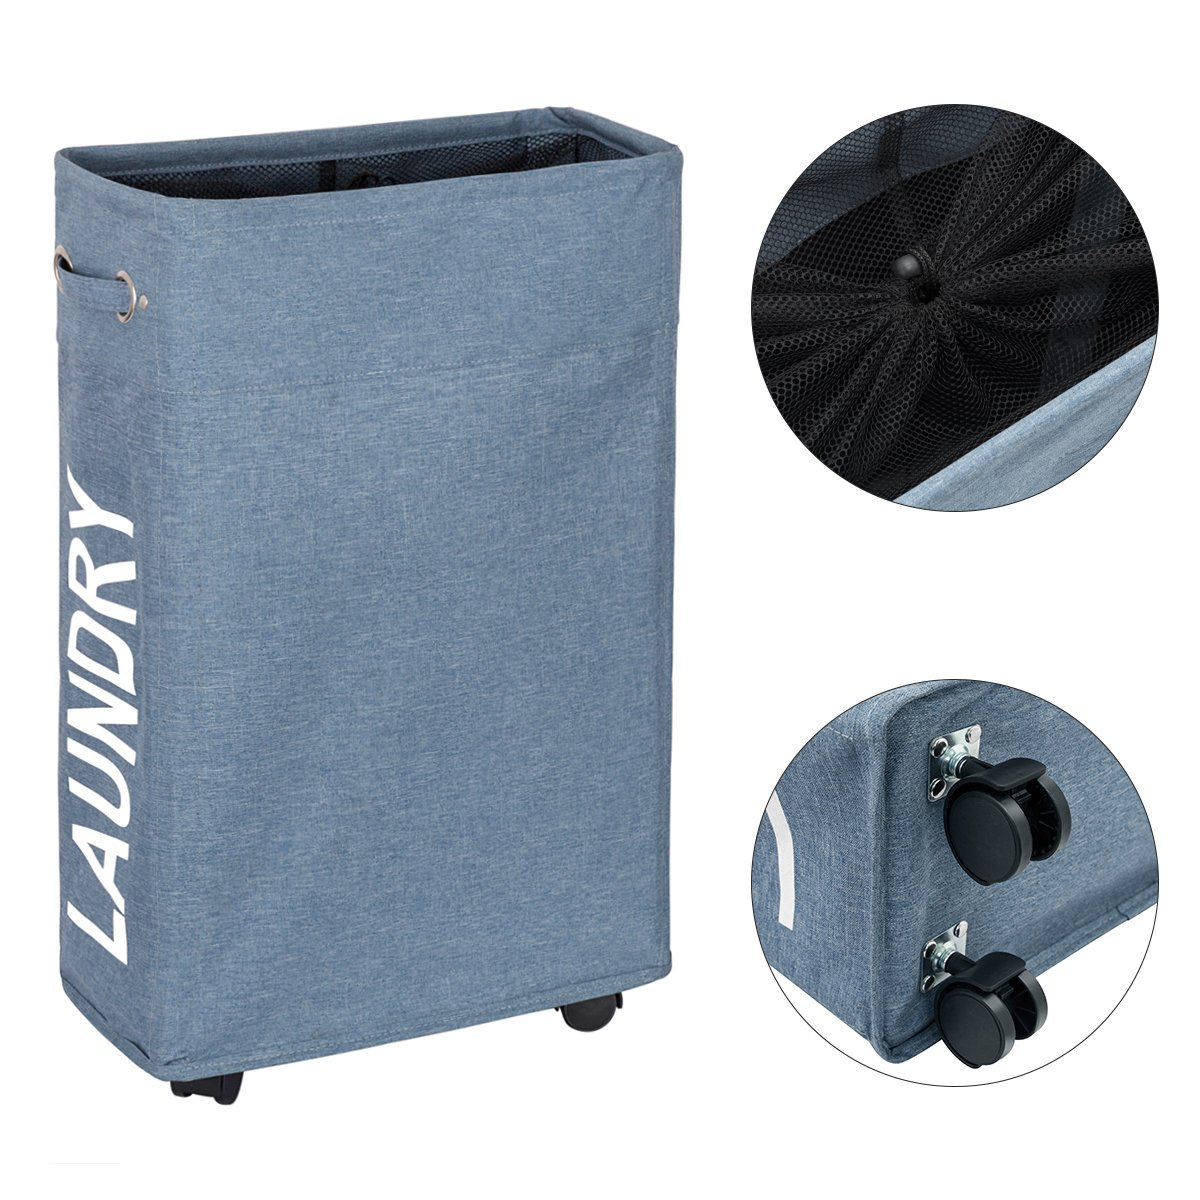 WISHPOOL Slim Rolling Laundry Hamper with Wheels Narrow Laundry Basket Dirty for